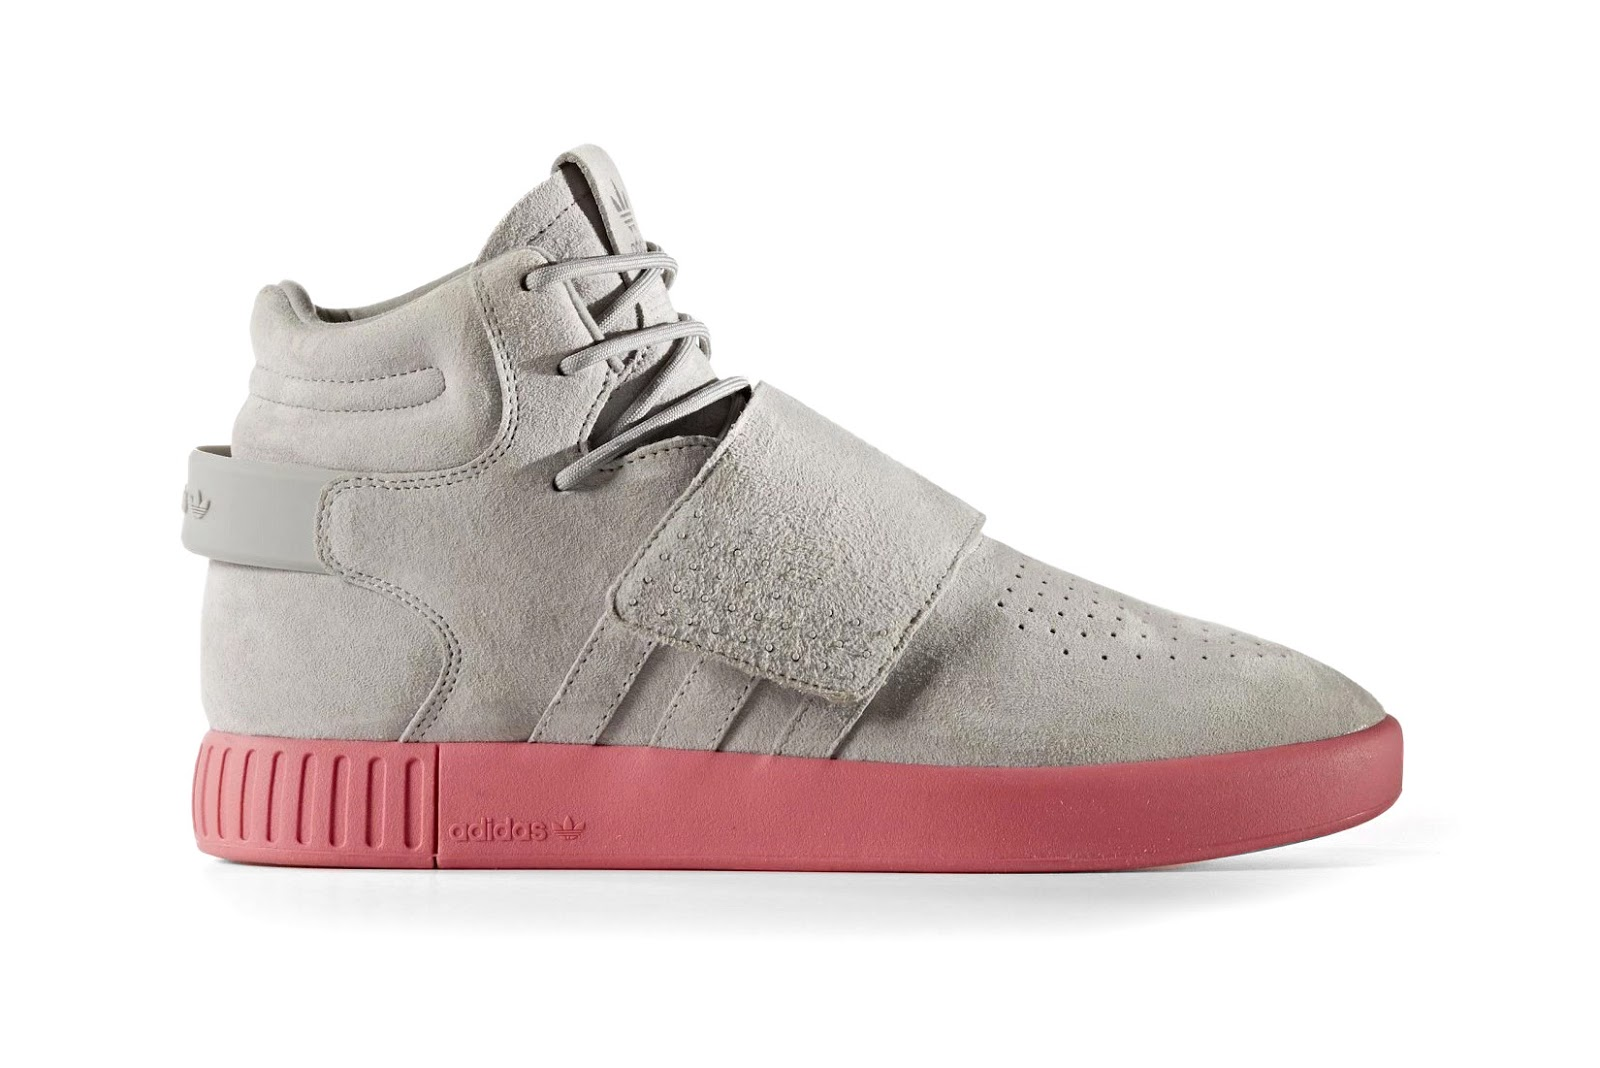 detailed look cc4bb f3848 Following the introduction of the adidas Tubular Invader Strap, we see  another colorway of the high-top that pulls inspiration from the Three  Stripe s vast ...